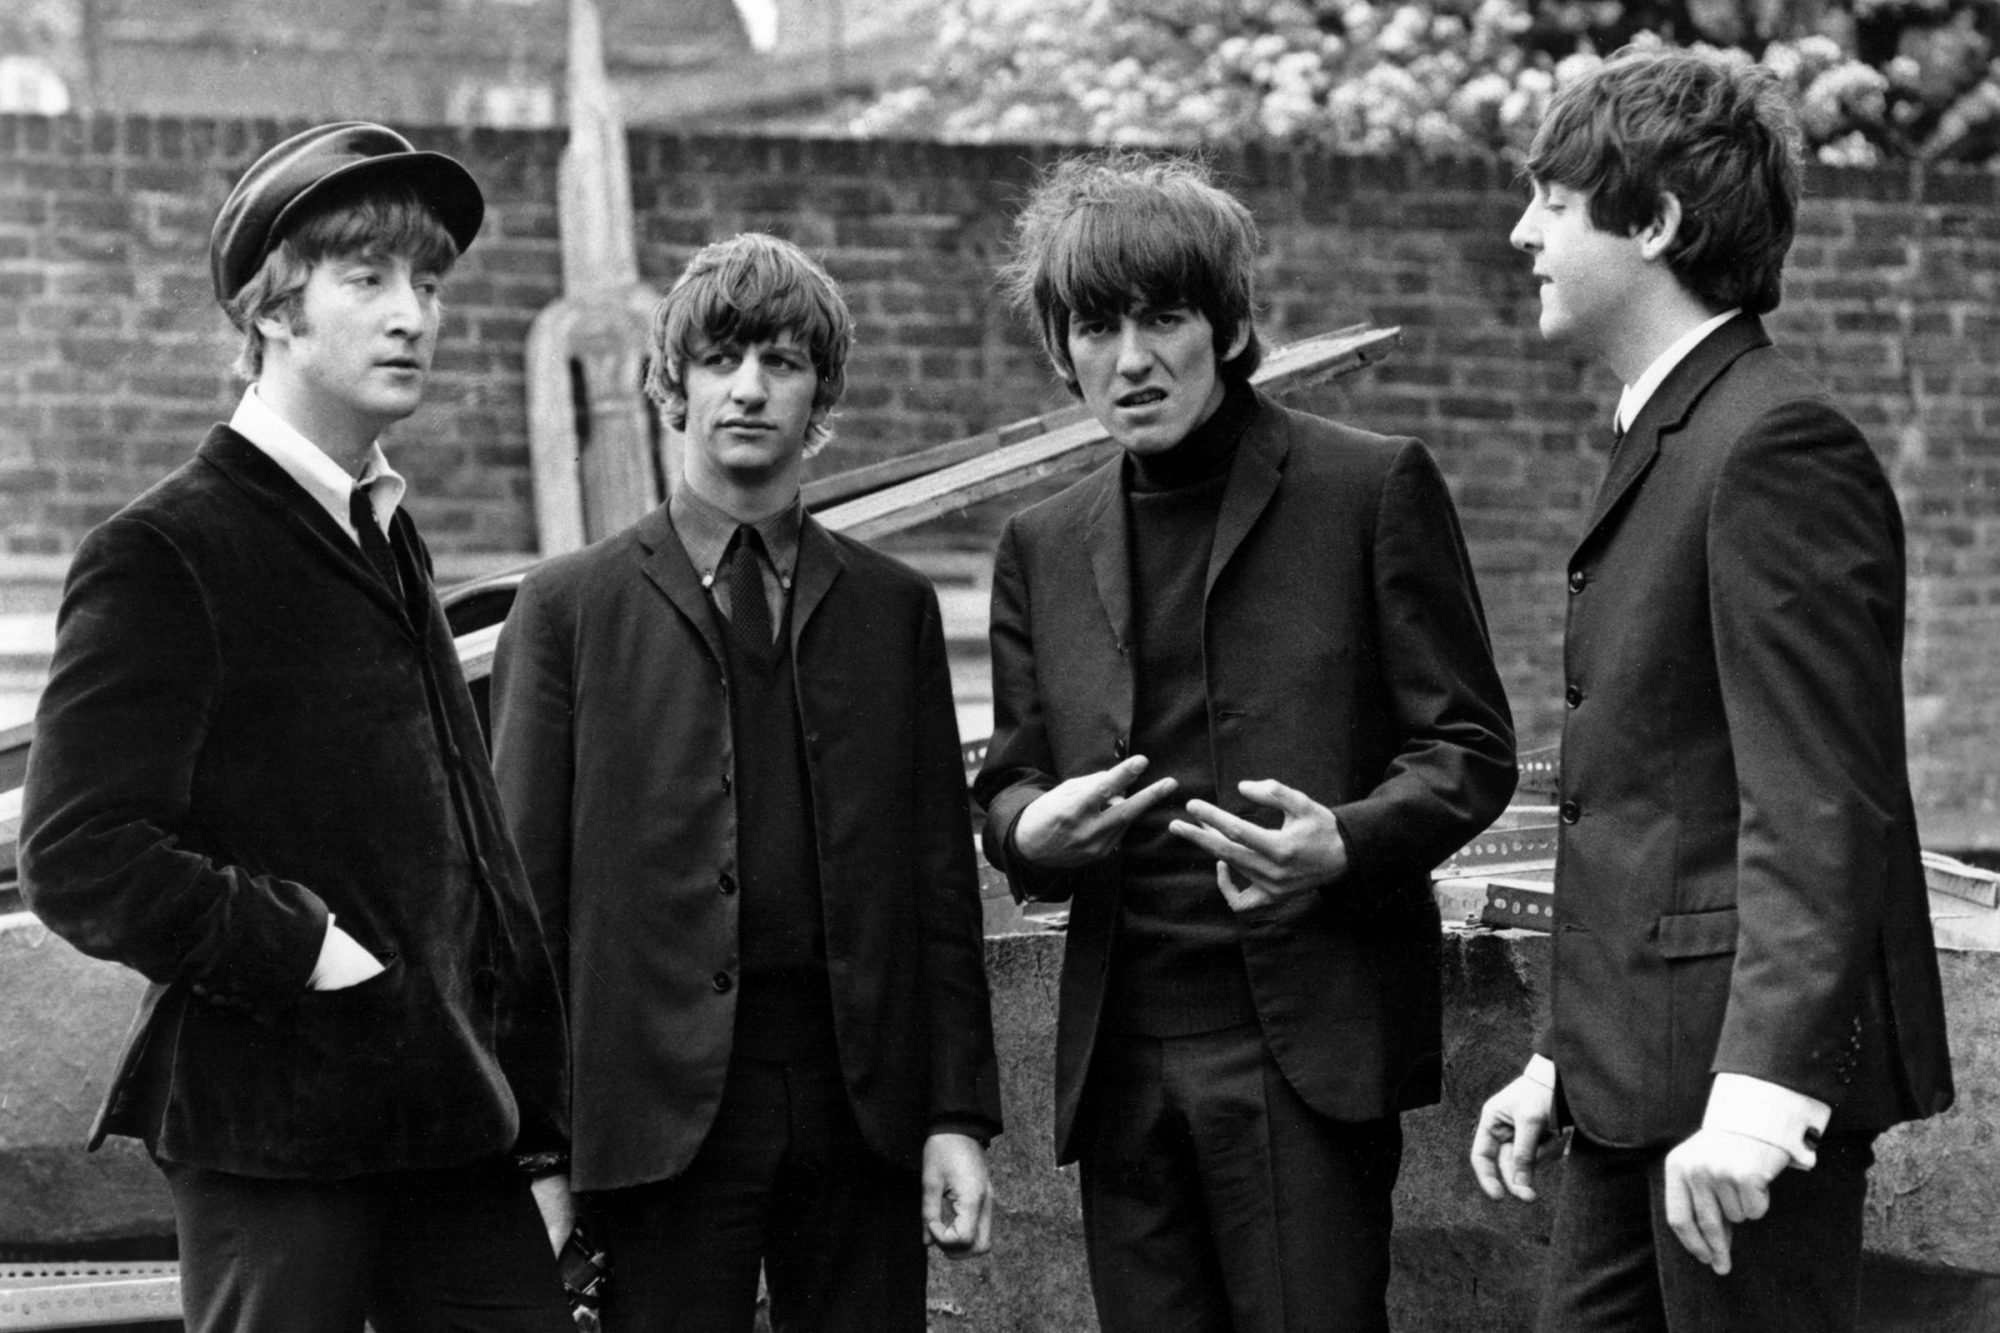 The Beatles in A Hard Day's Night (1964)